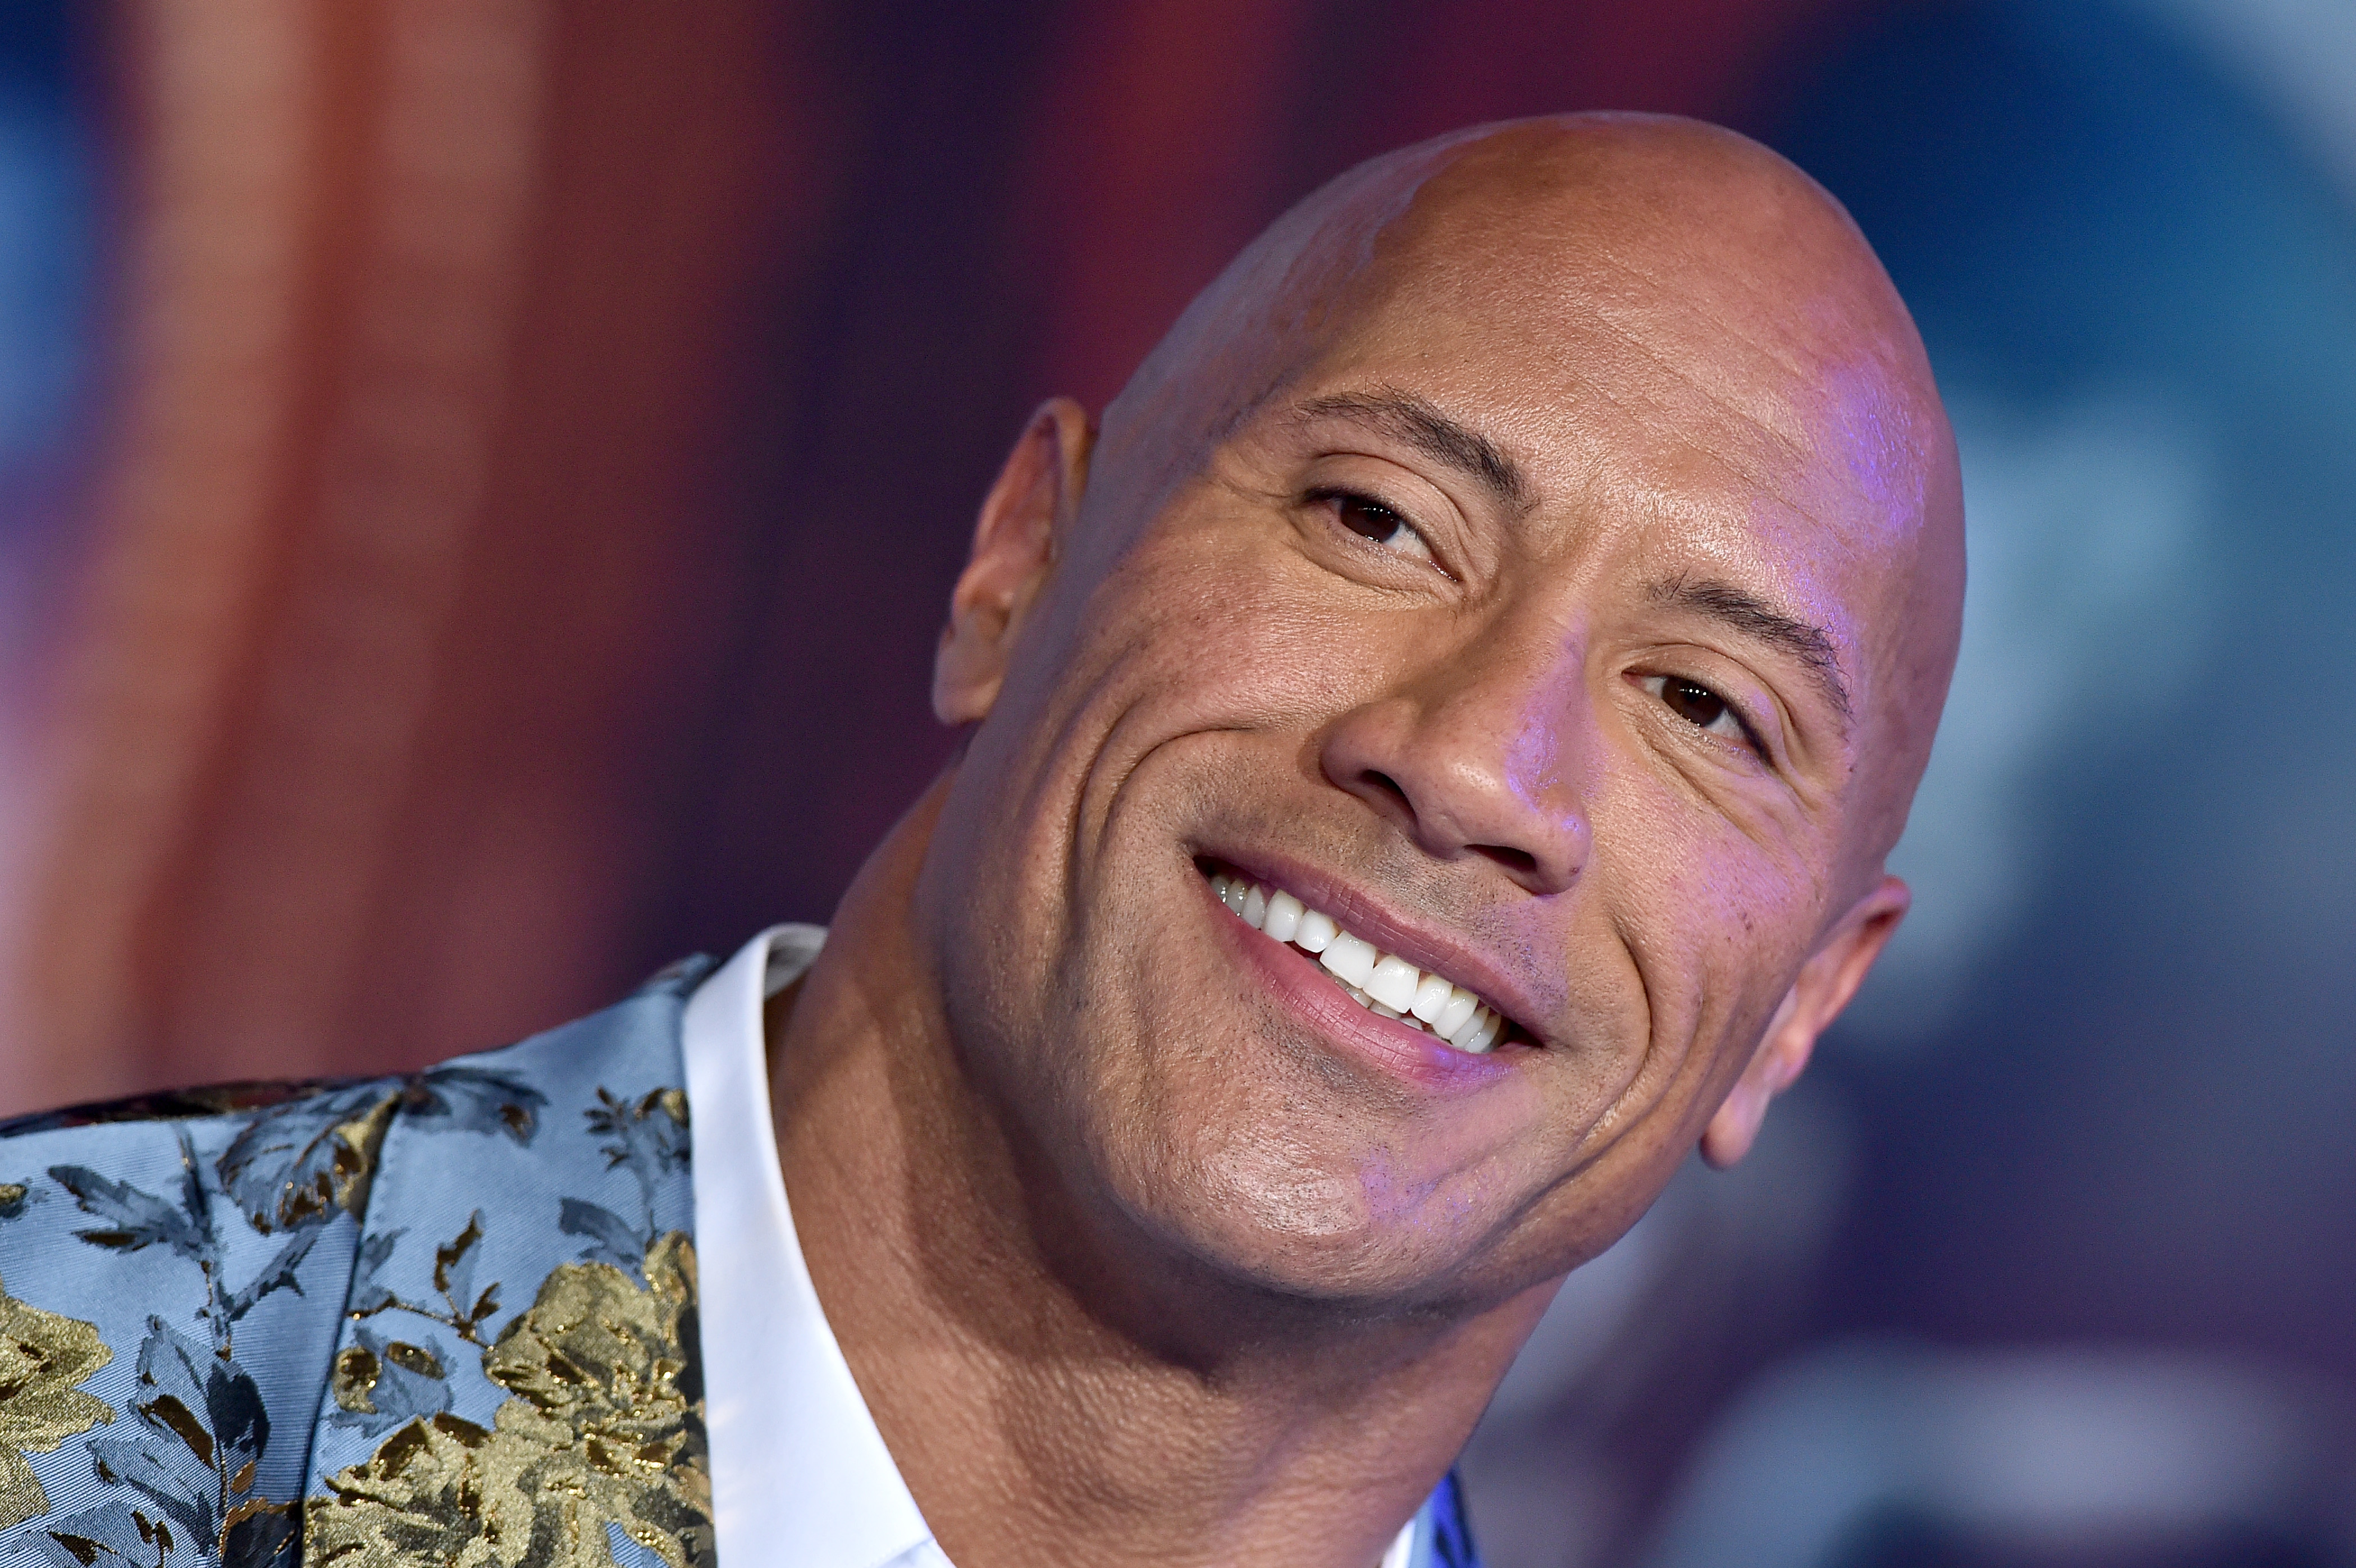 Dwayne Johnson attends the premiere of Sony Pictures'  Jumanji: The Next Level  on December 09, 2019 in Hollywood, California.